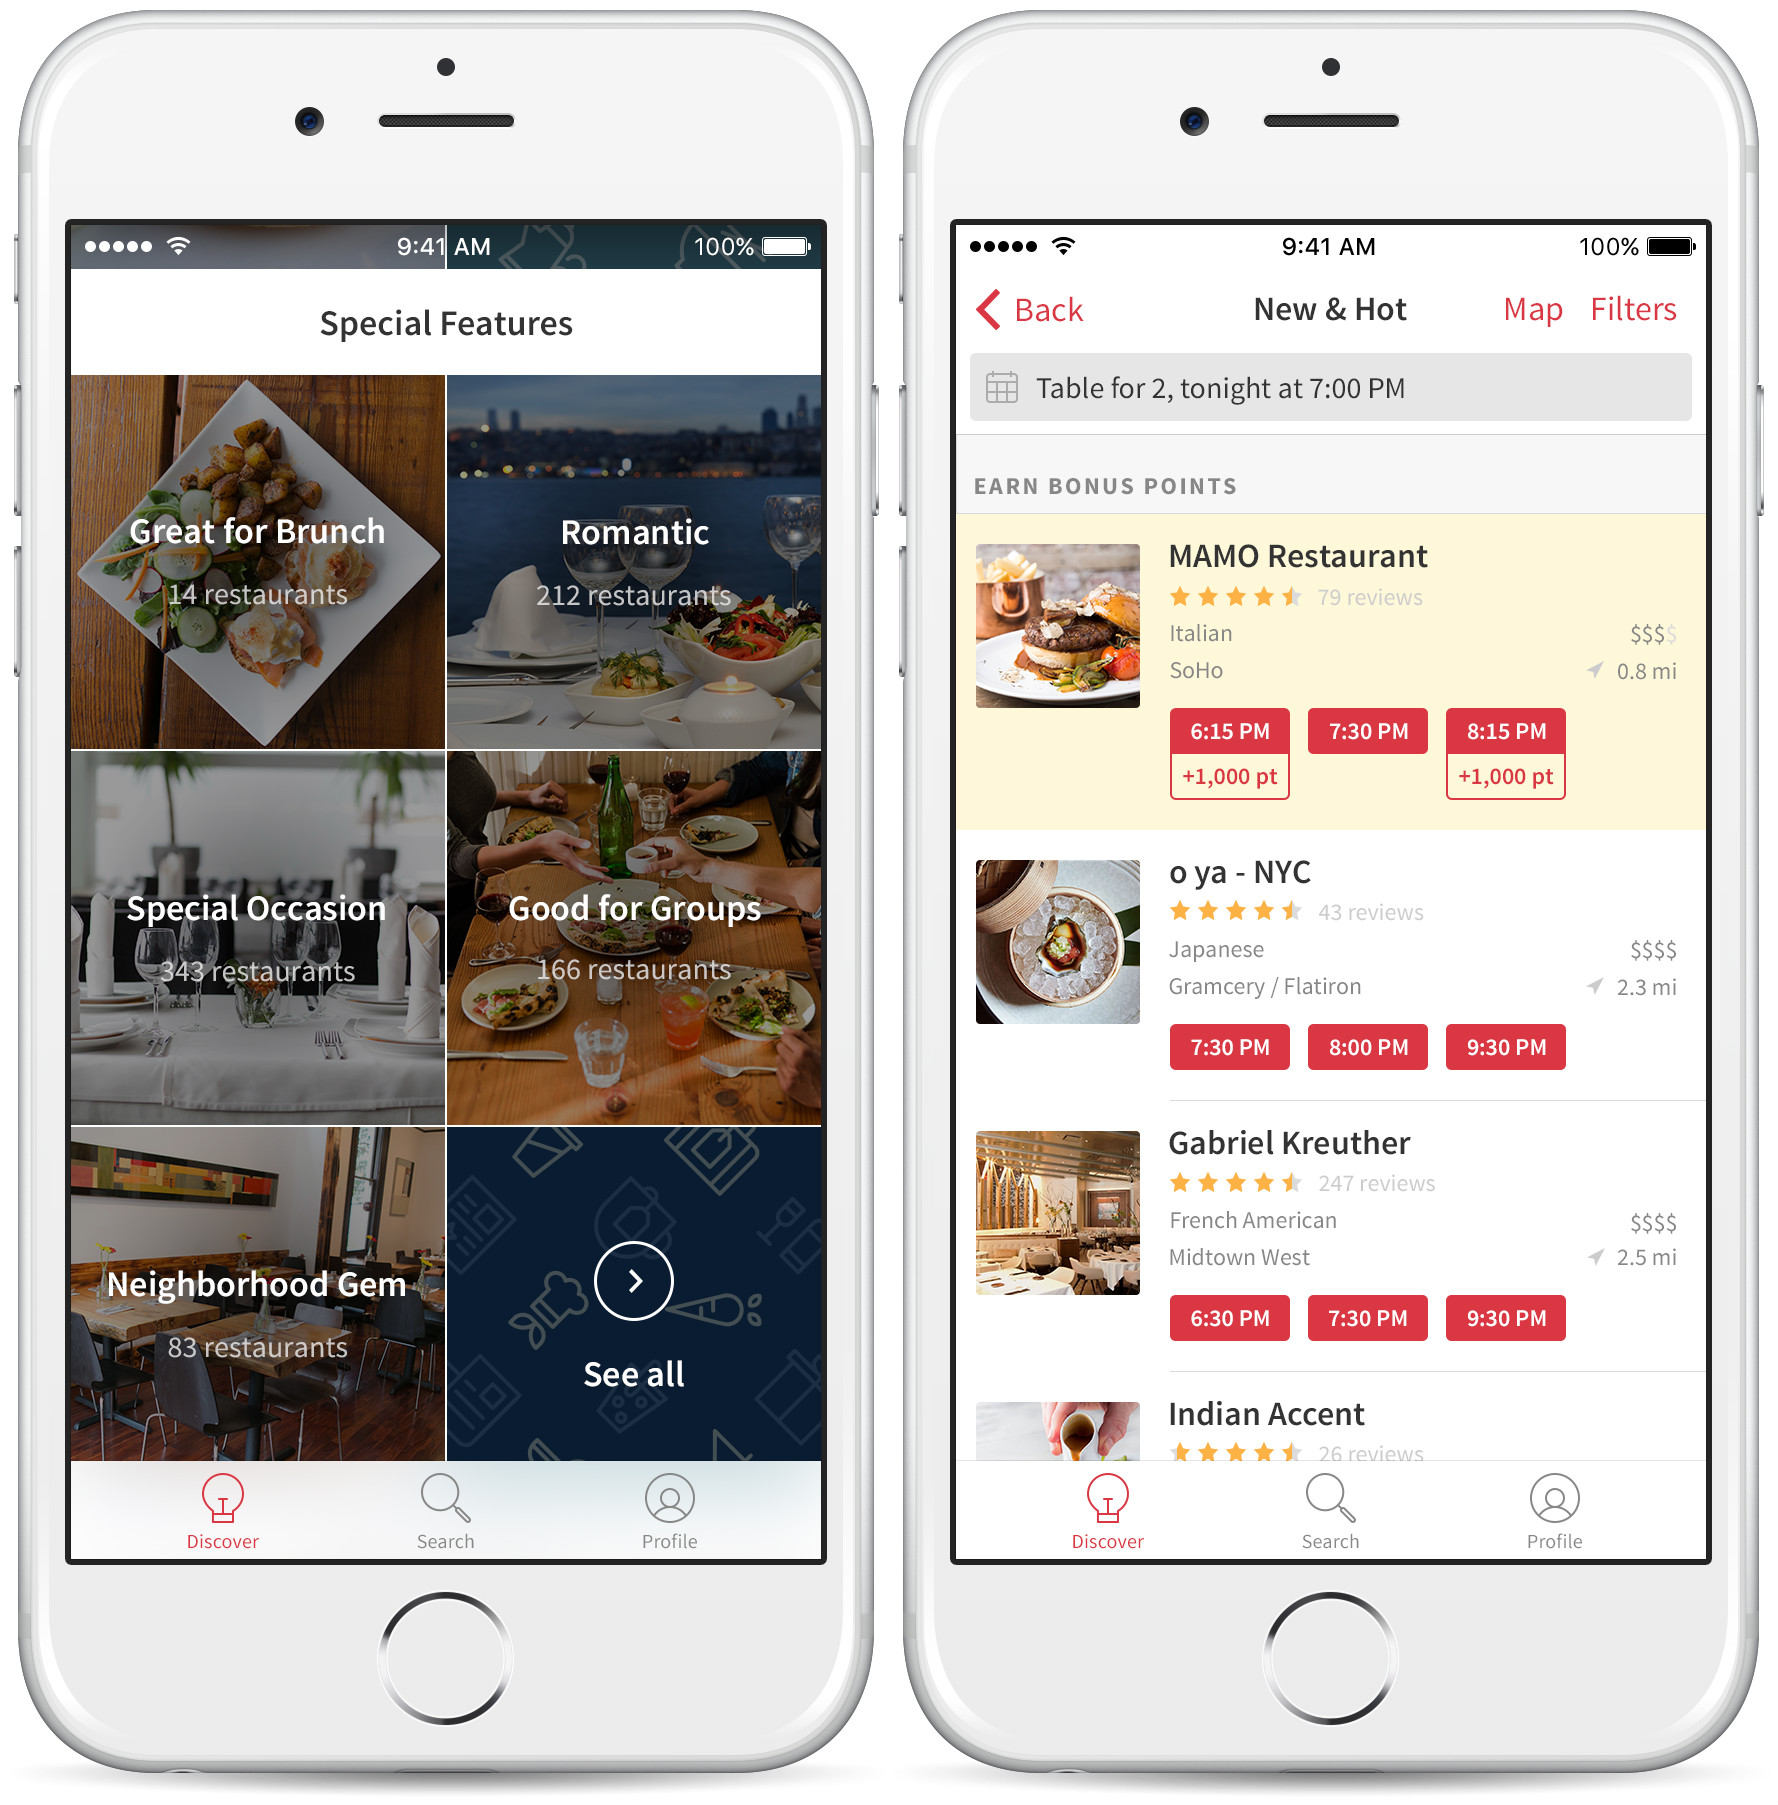 Battery Warehouse Near Me >> OpenTable Discover: App Redesign Helps Travelers + Locals ...